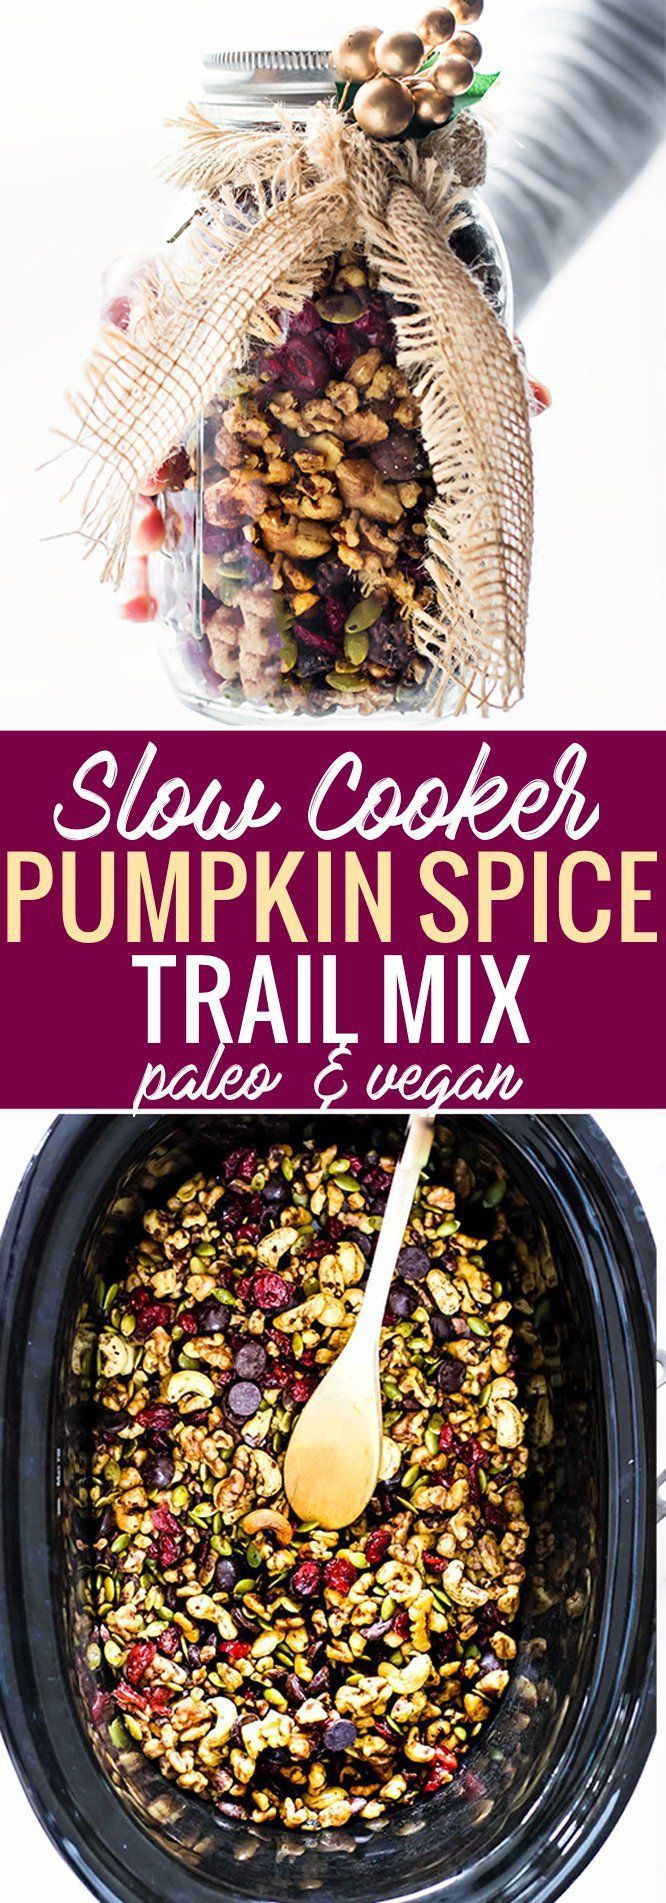 This pumpkin spice trail mix is not only easy to make in the slow cooker, but paleo and vegan friendly too! Dark chocolate, cocoa nibs, cranberries, Walnuts, pumpkin spice, and more! Great as a Holiday gift or for healthy snacking. Smells amazing, tastes